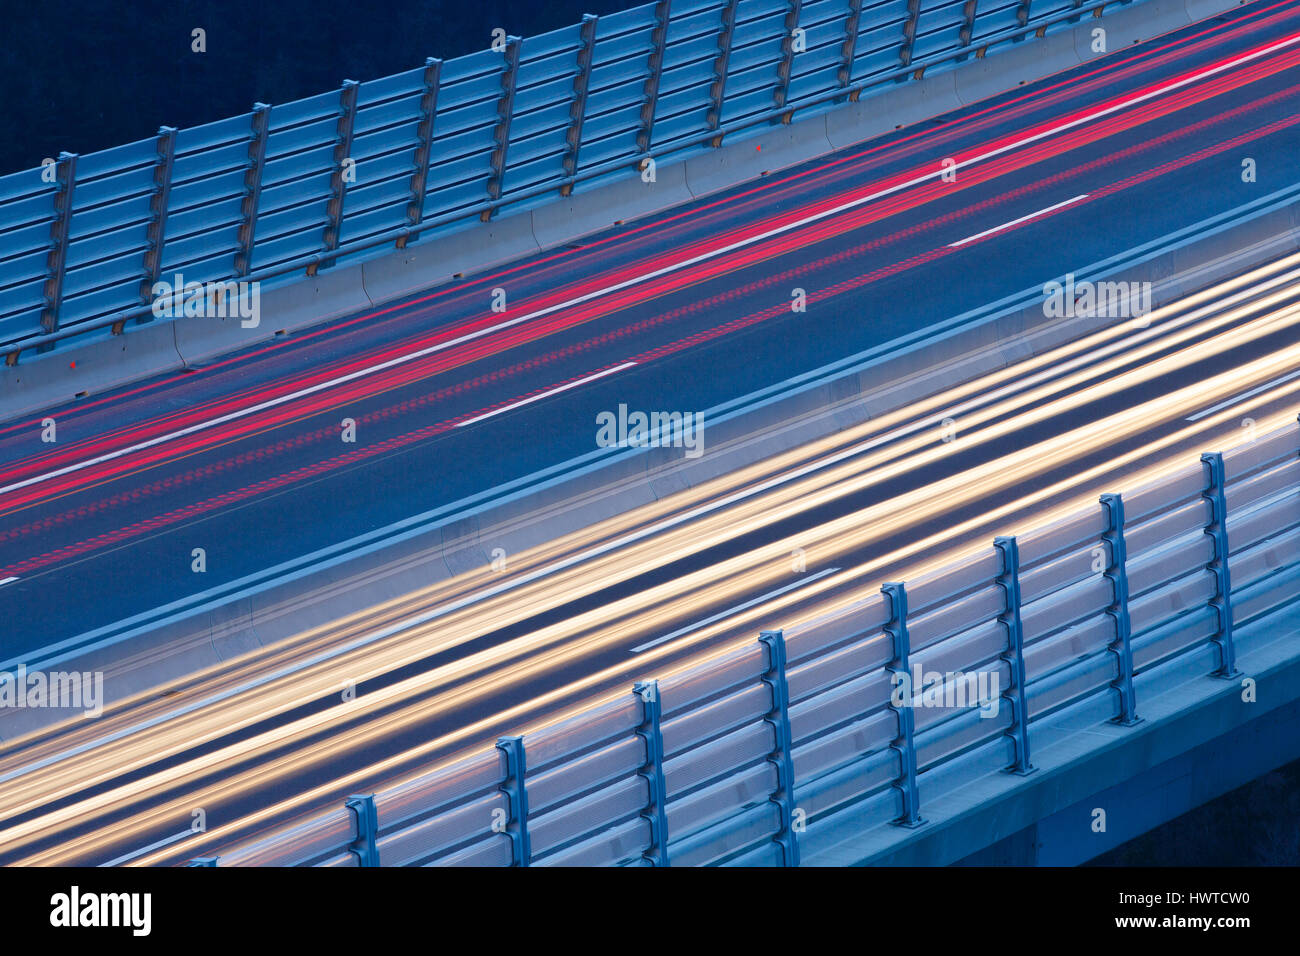 Blurred lights of vehicles driving on a tall viaduct in rush hour, long exposure. Transportation, on the road, connectivity - Stock Image